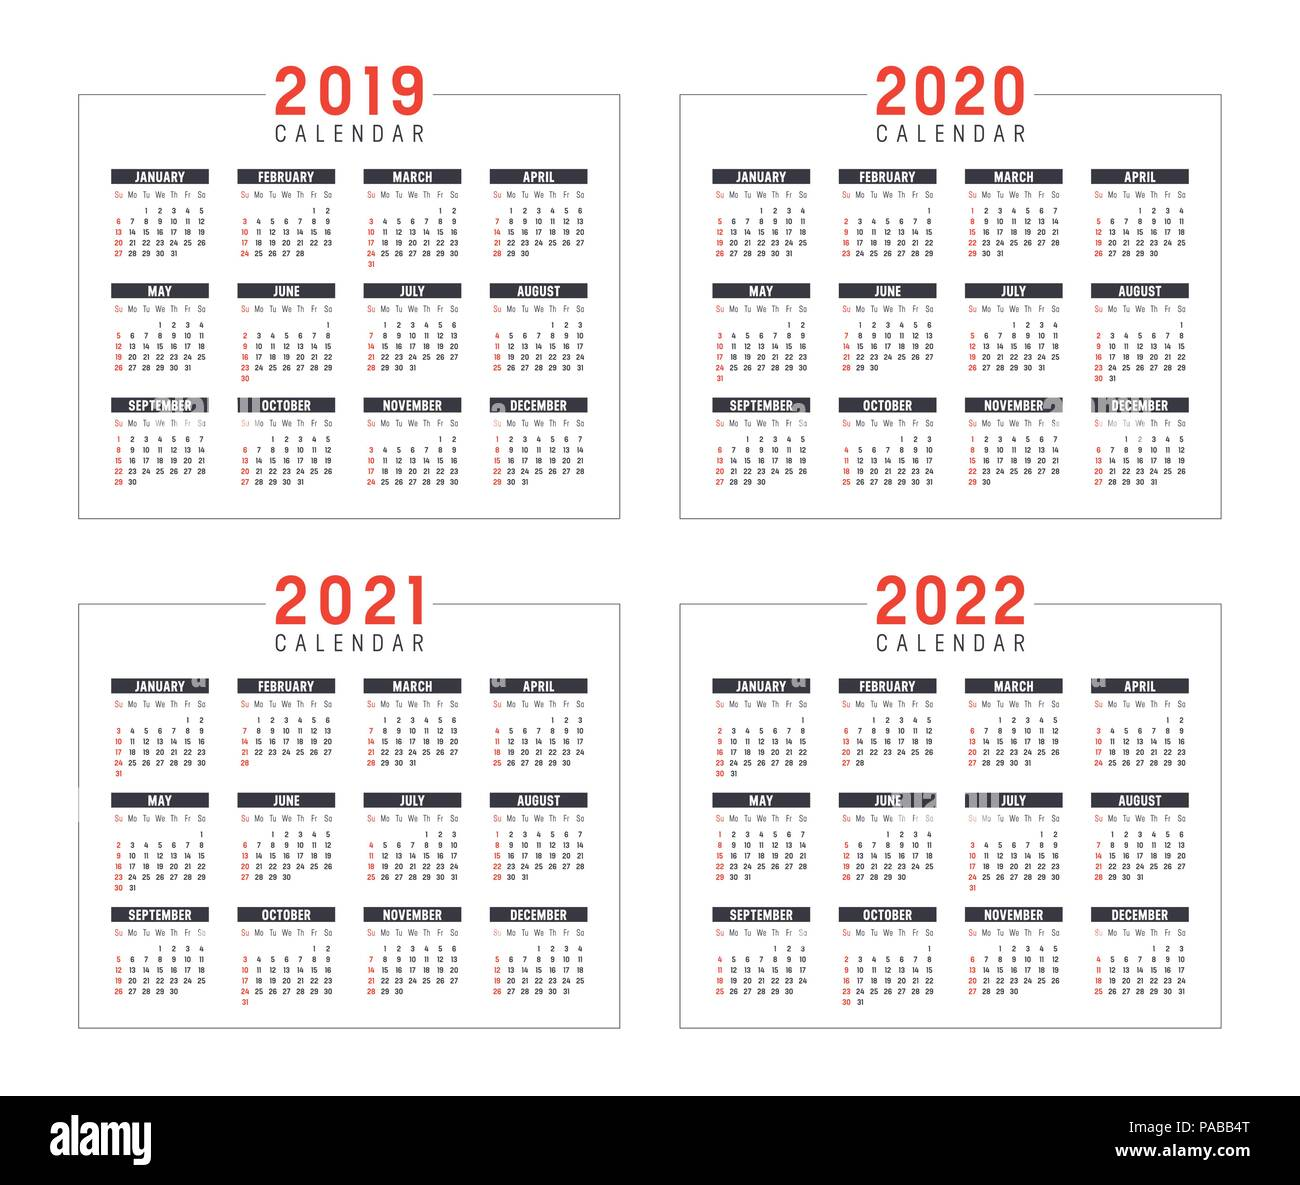 2019 2020 Cut Out Stock Images & Pictures   Alamy